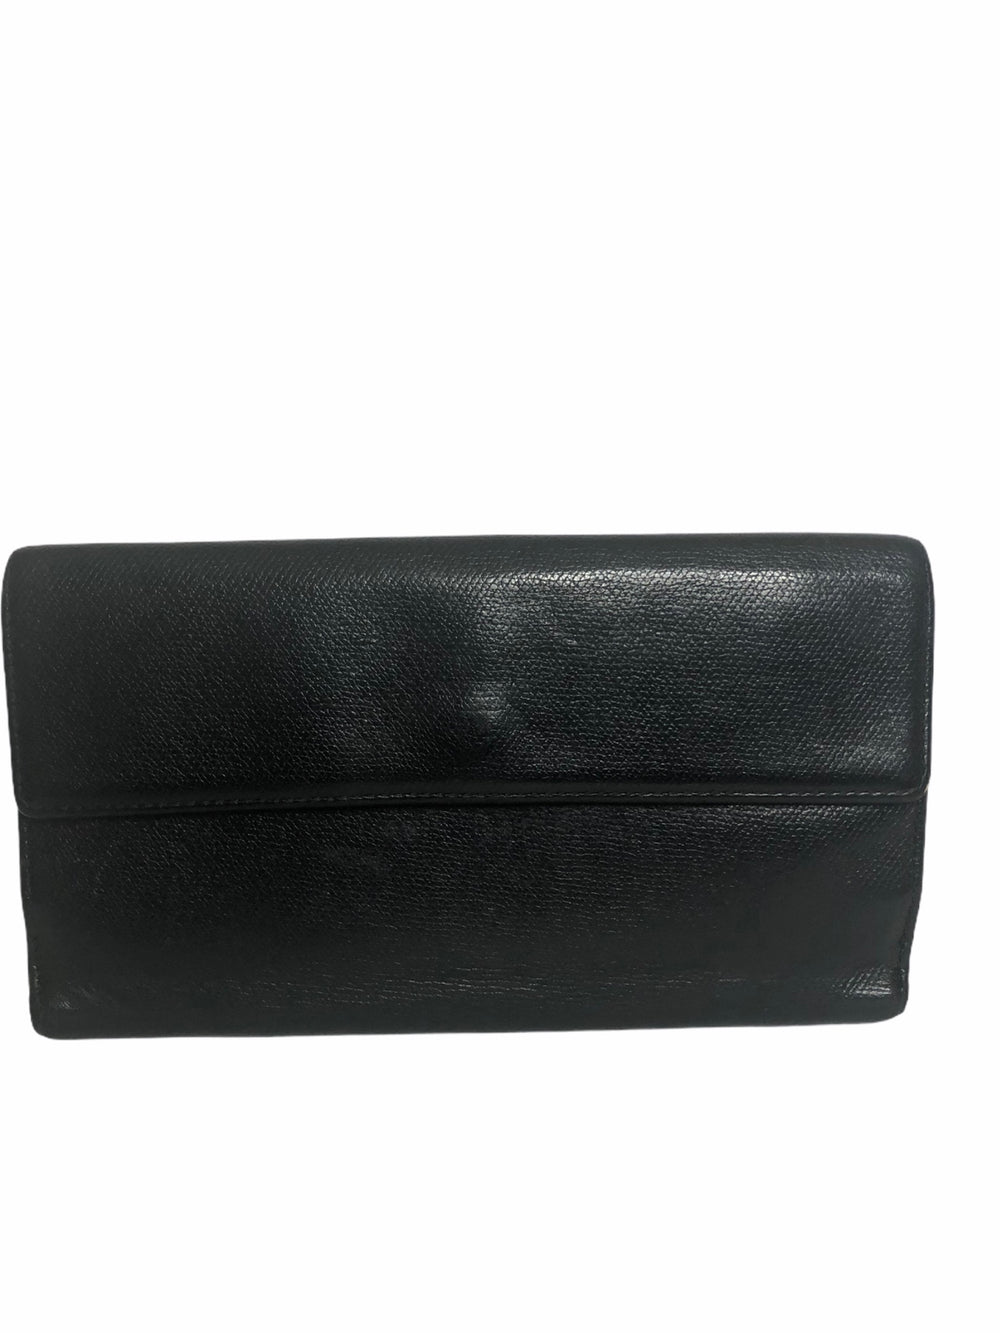 Chanel Black Calfskin Leather Wallet - As Seen on Instagram 29/11/20